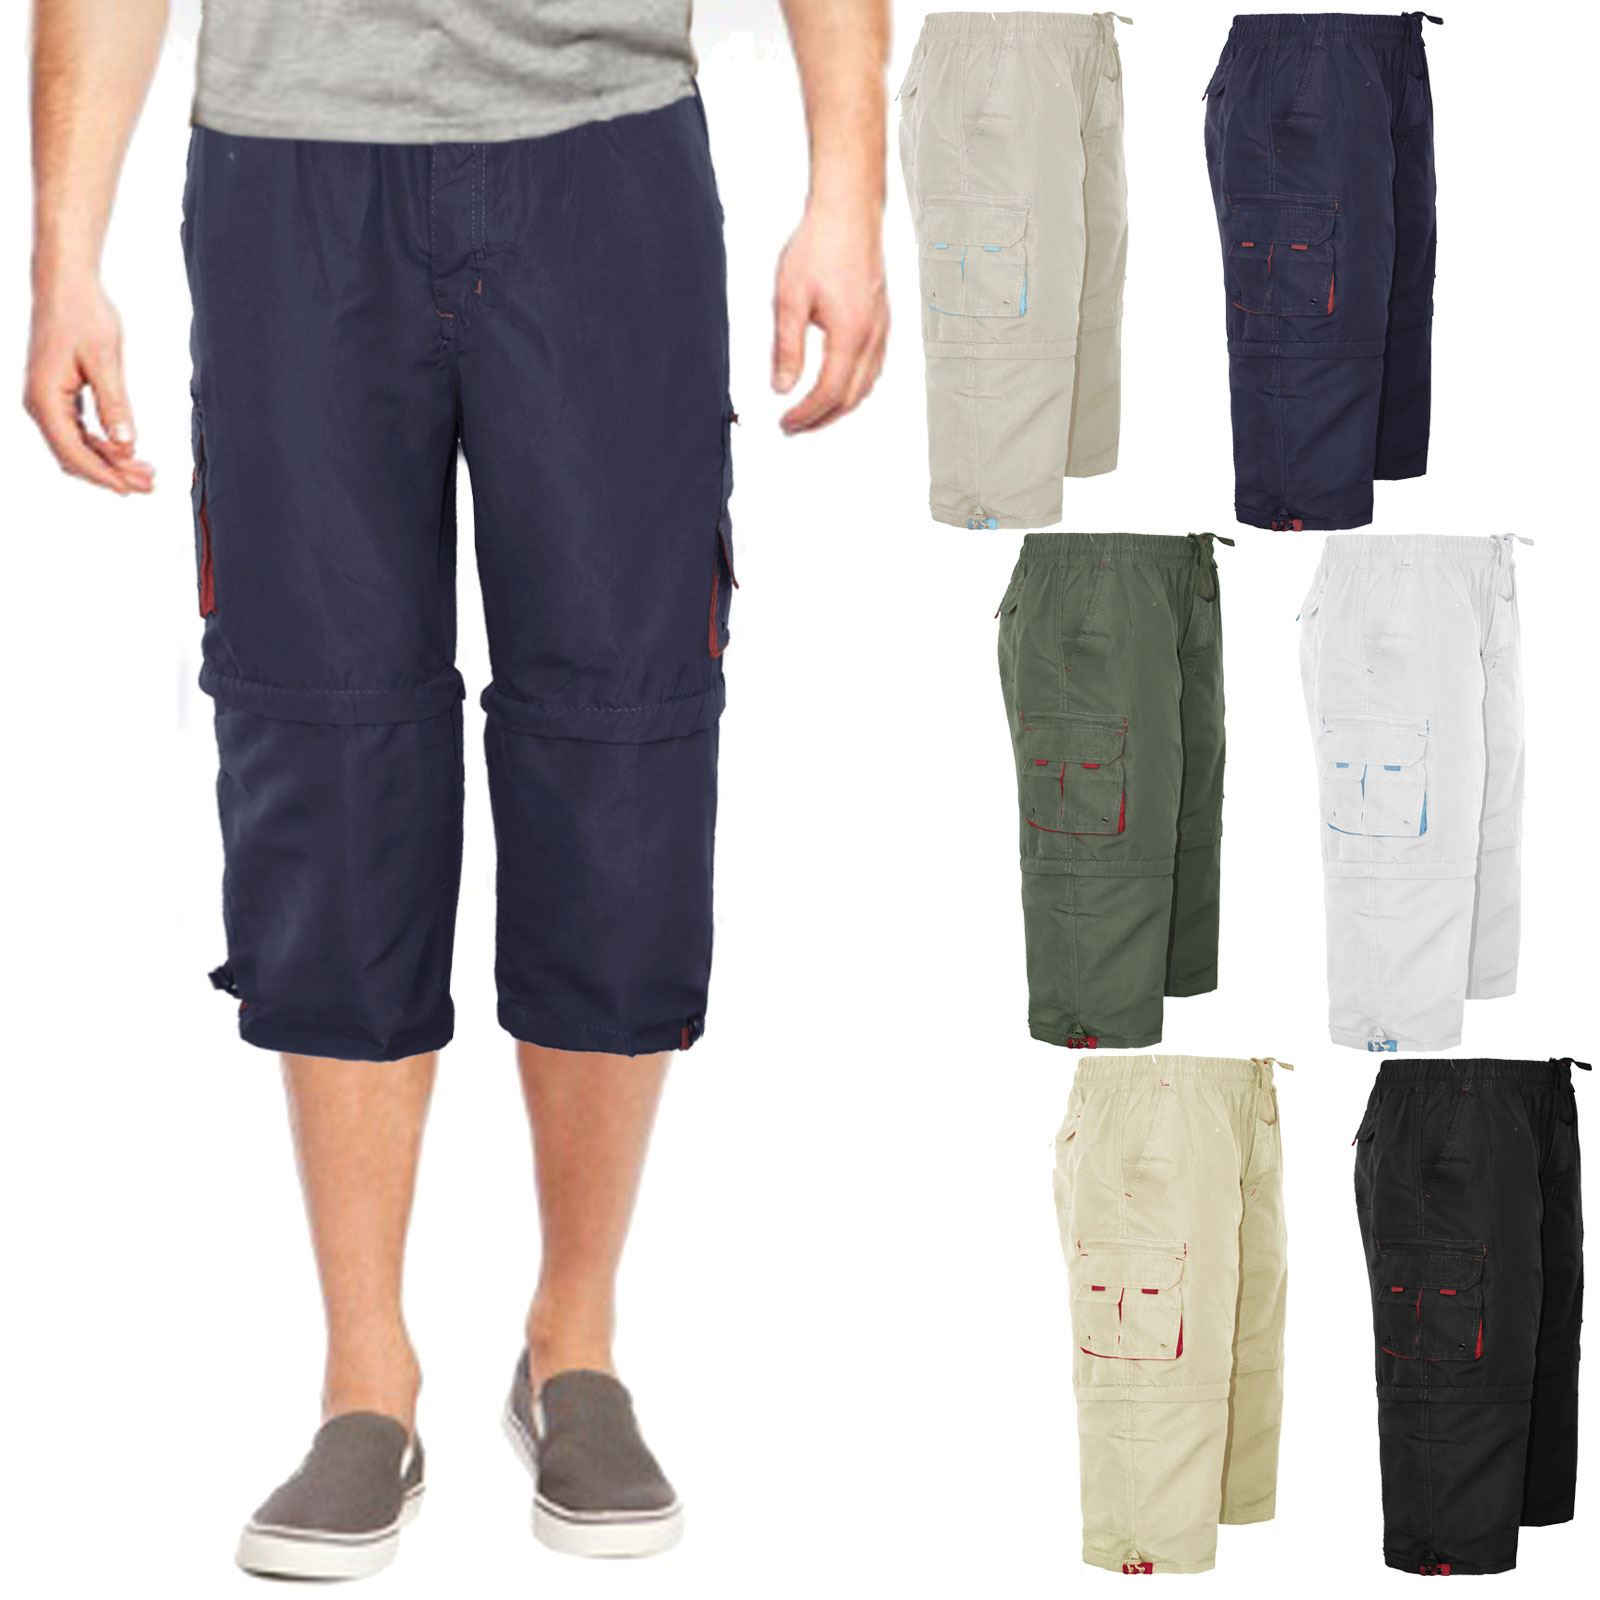 Men's Black Tiro 3/4 Length Soccer Pants $ 40 From Dick's Sporting Goods Price last checked 6 days, 10 hours ago Product prices and availability are accurate as of Price: $